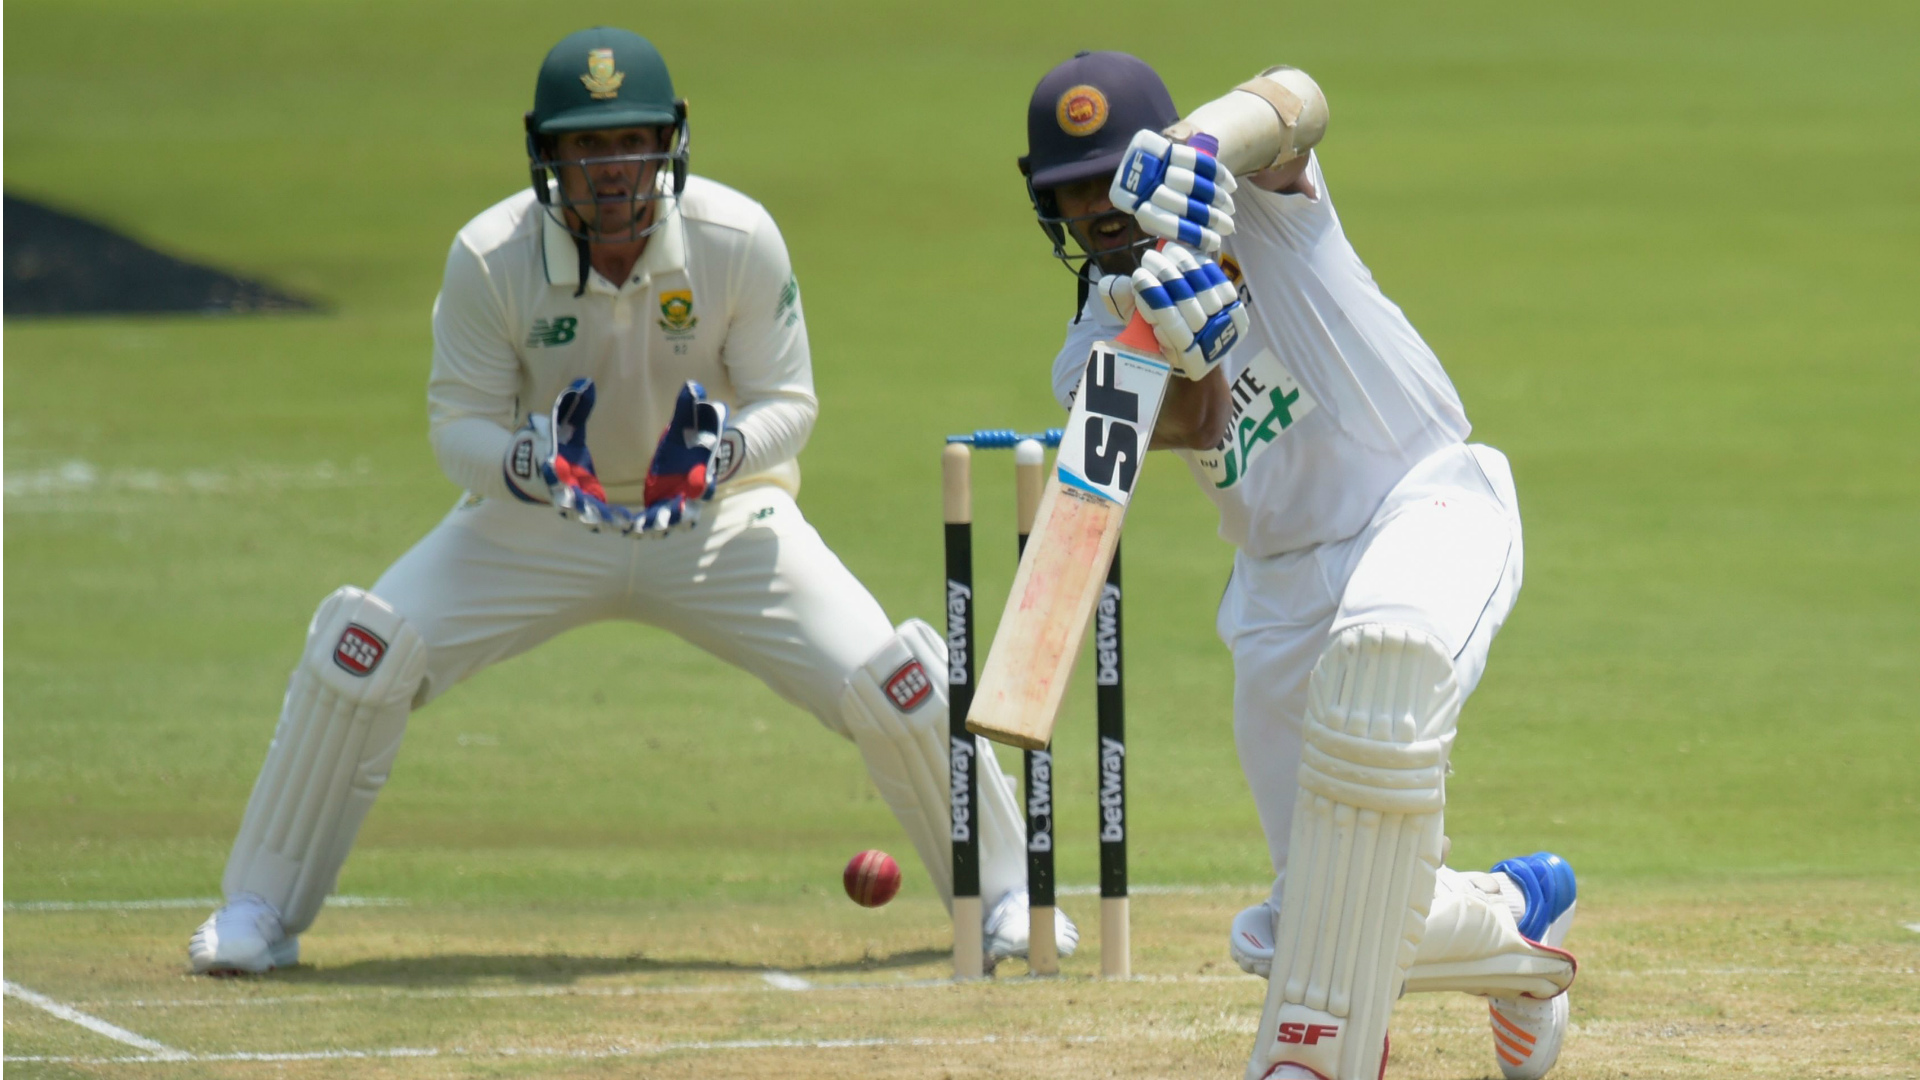 Chandimal and De Silva put Sri Lanka on top against South Africa